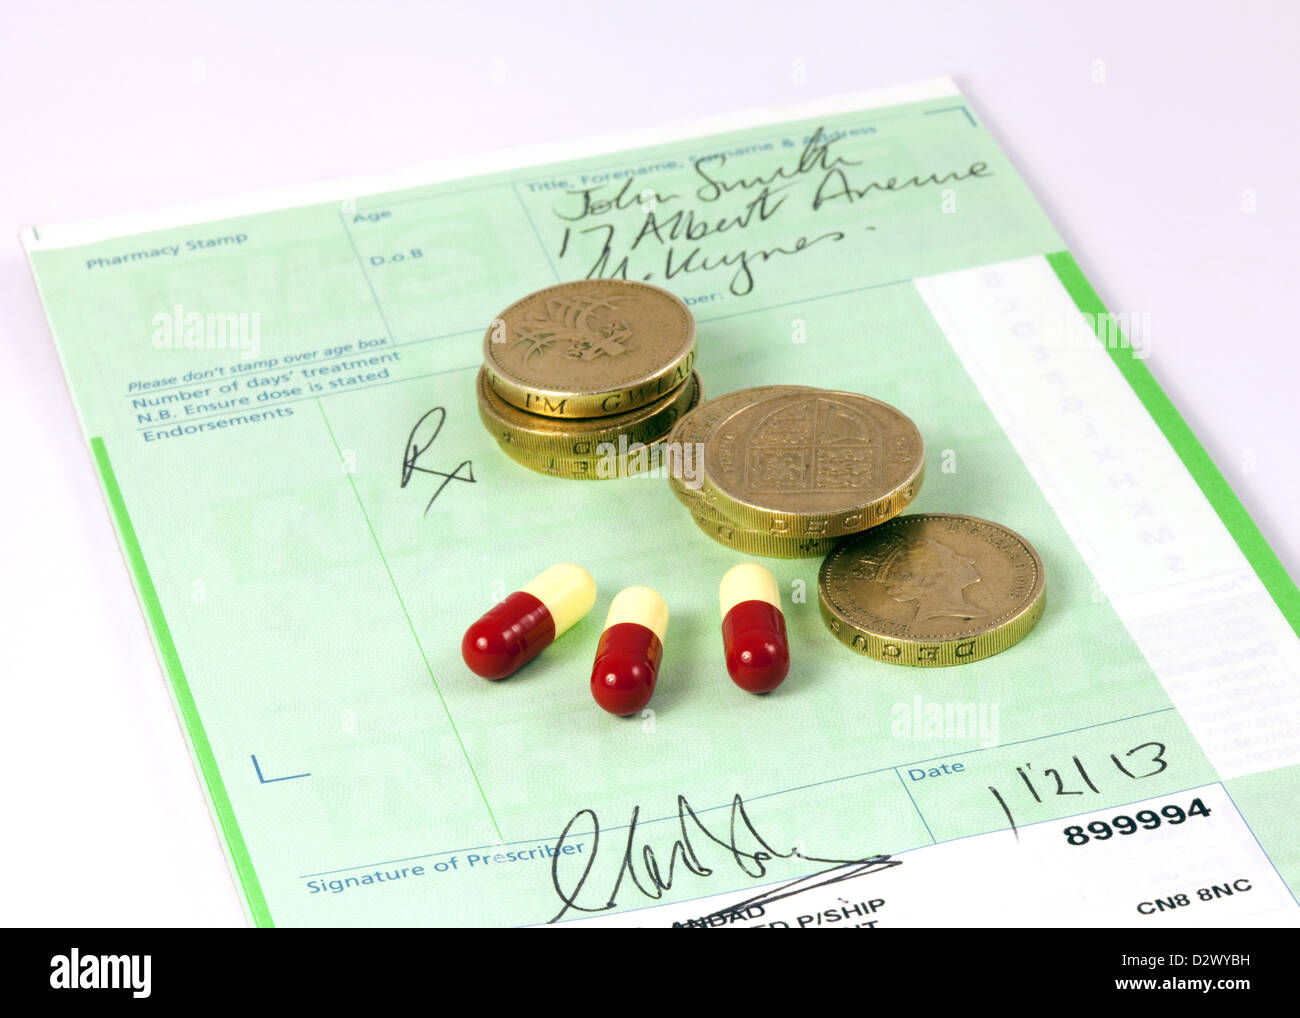 NHS prescription with pound coins and drugs to illustrate the concept of prescription drug costs, UK - Stock Image